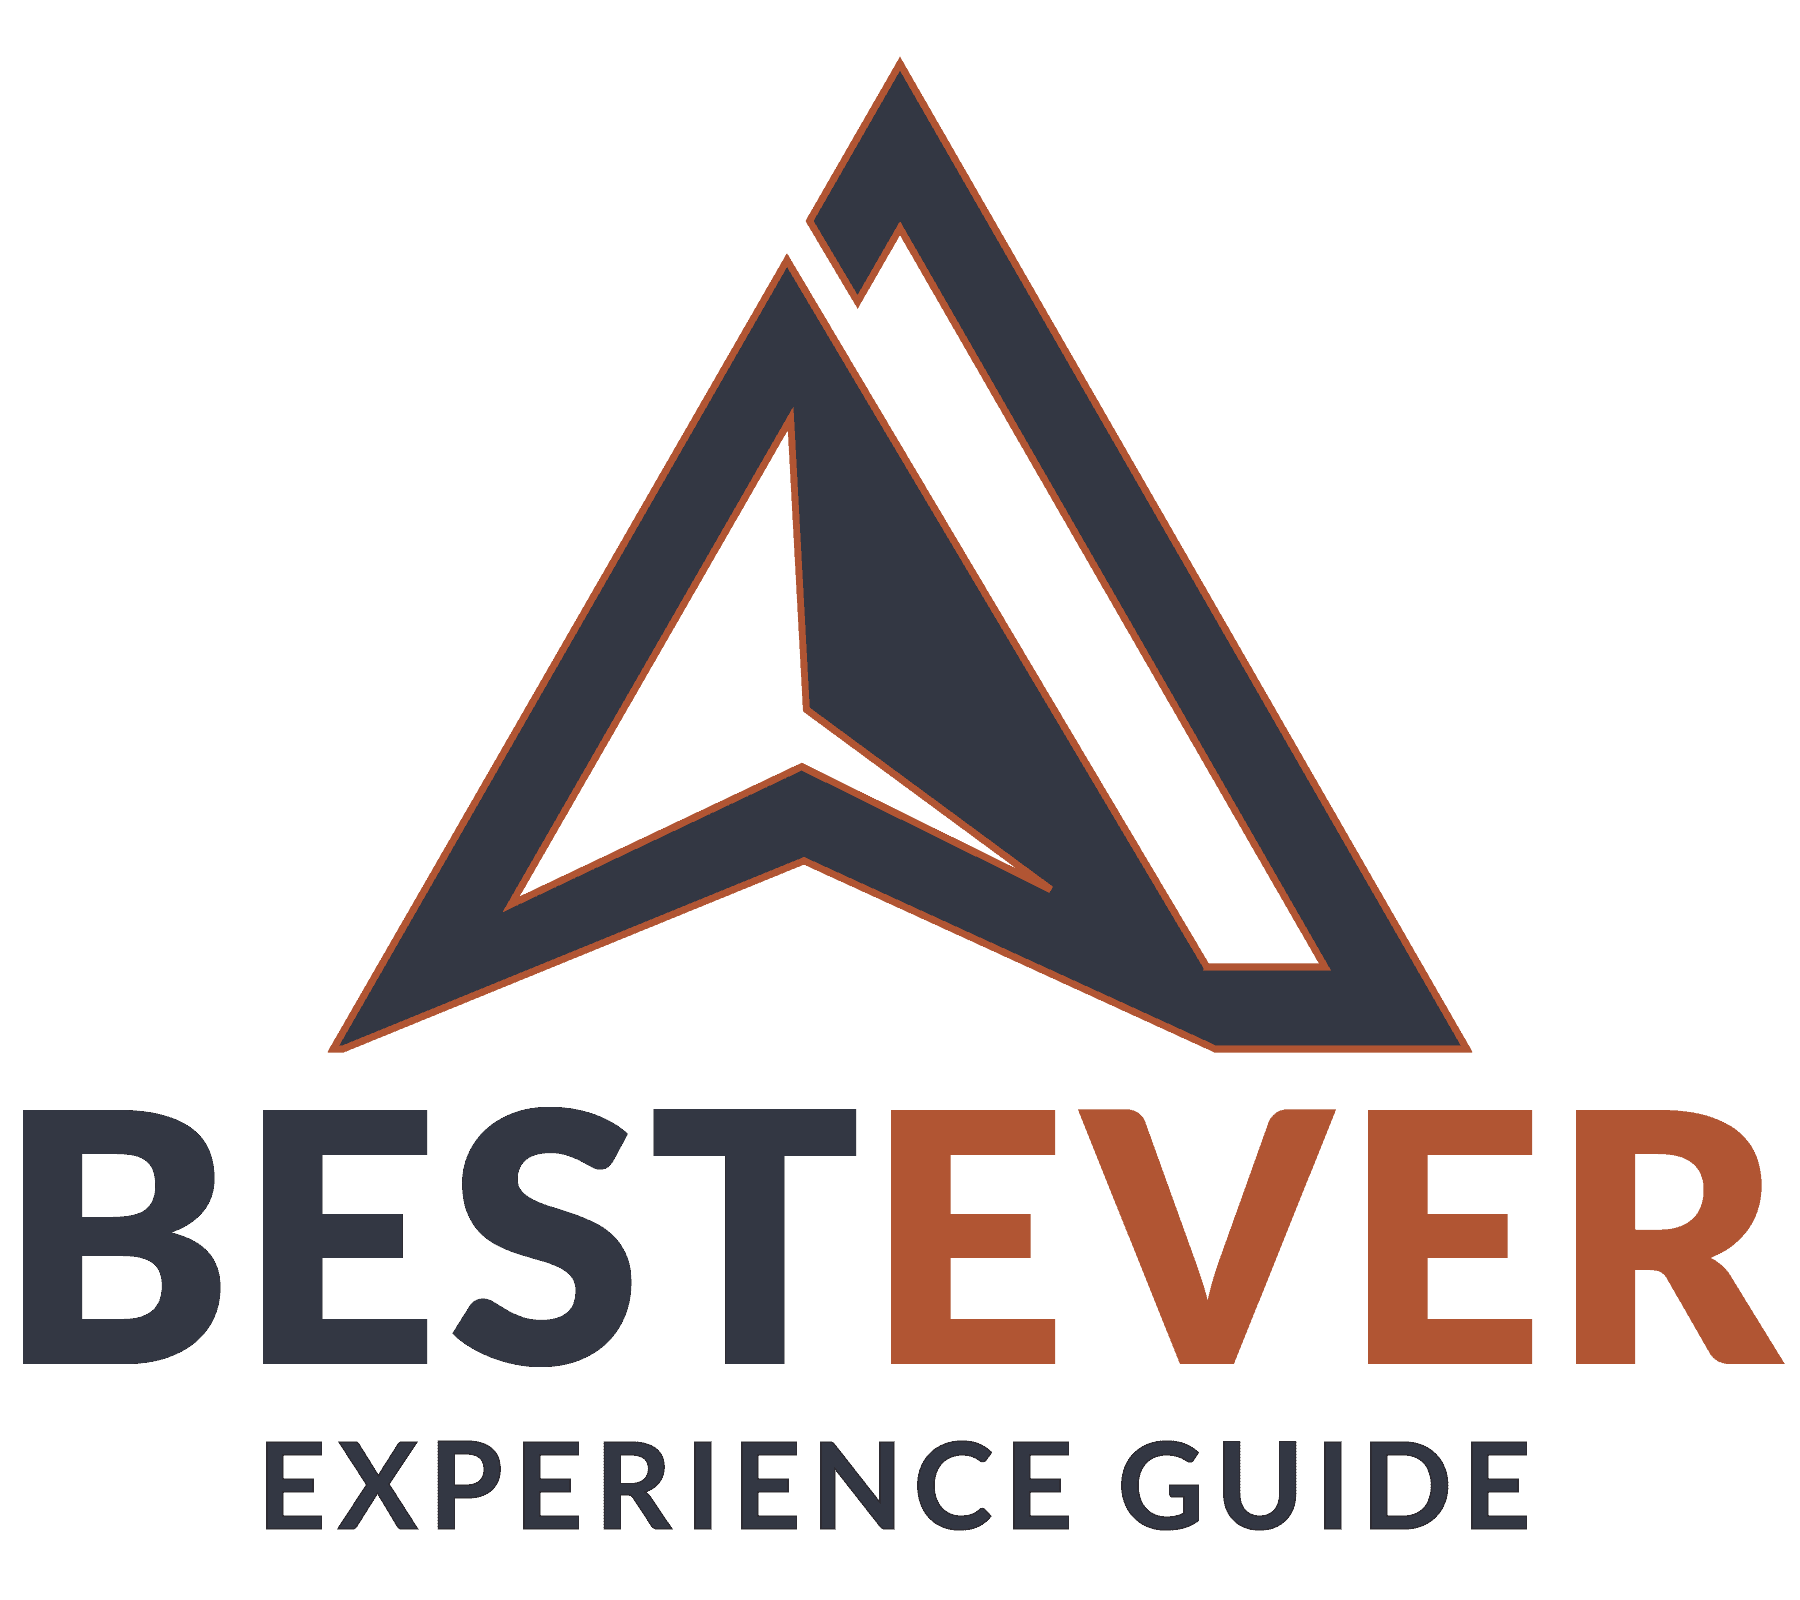 The Best Ever Guide Logo